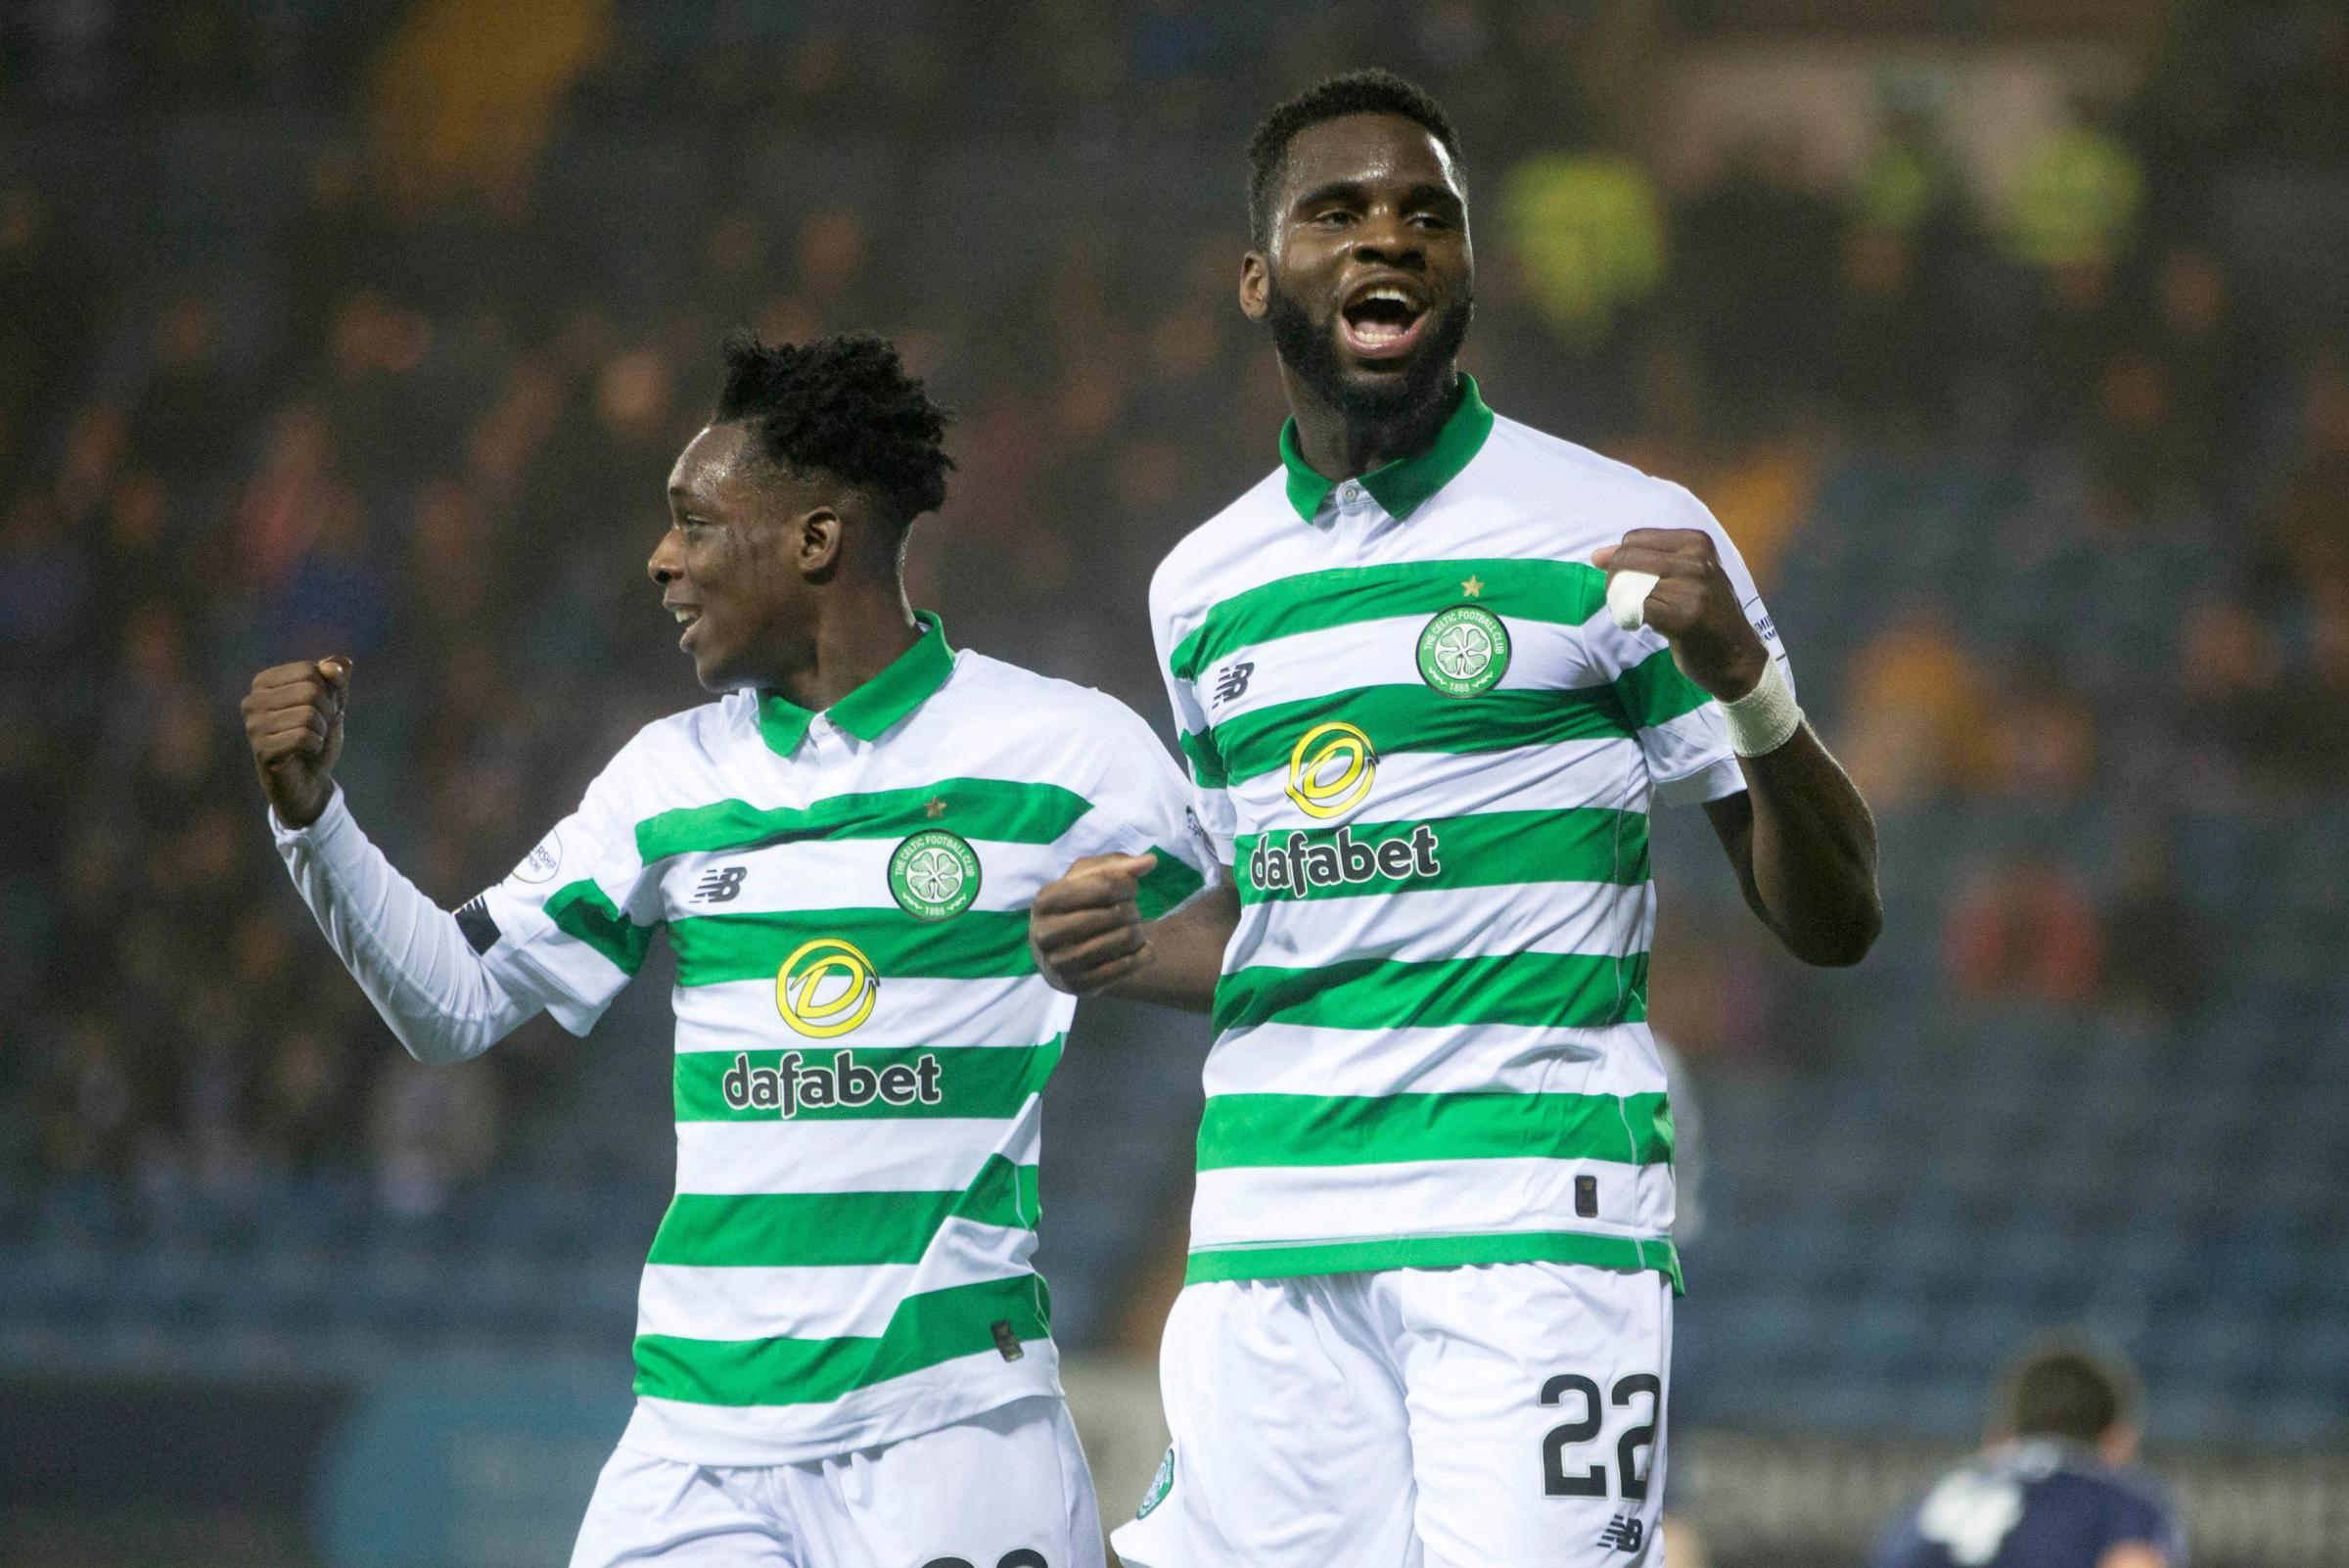 Neil Lennon rules out Celtic striker Odsonne Edouard being sold in January after Monaco link